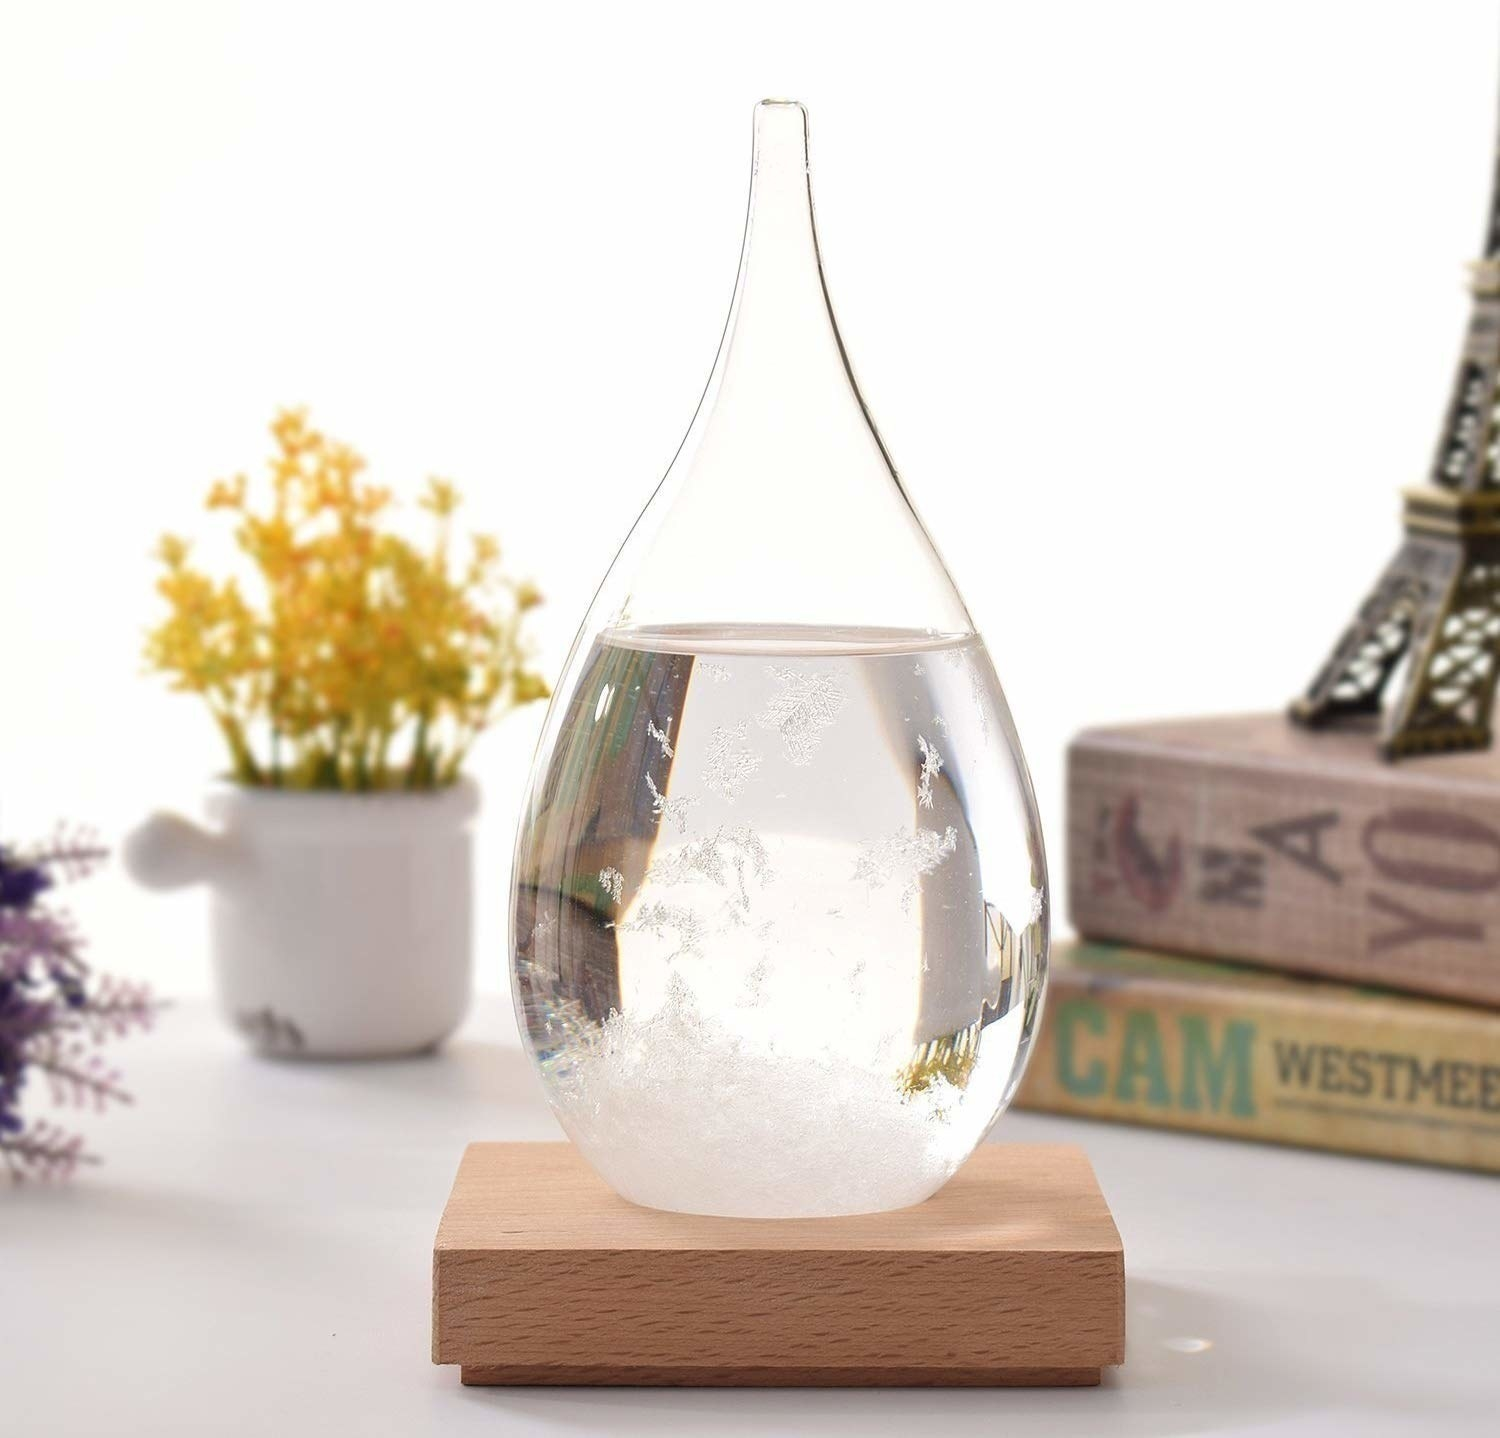 The teardrop-shaped storm glass filled with a liquid and crystals